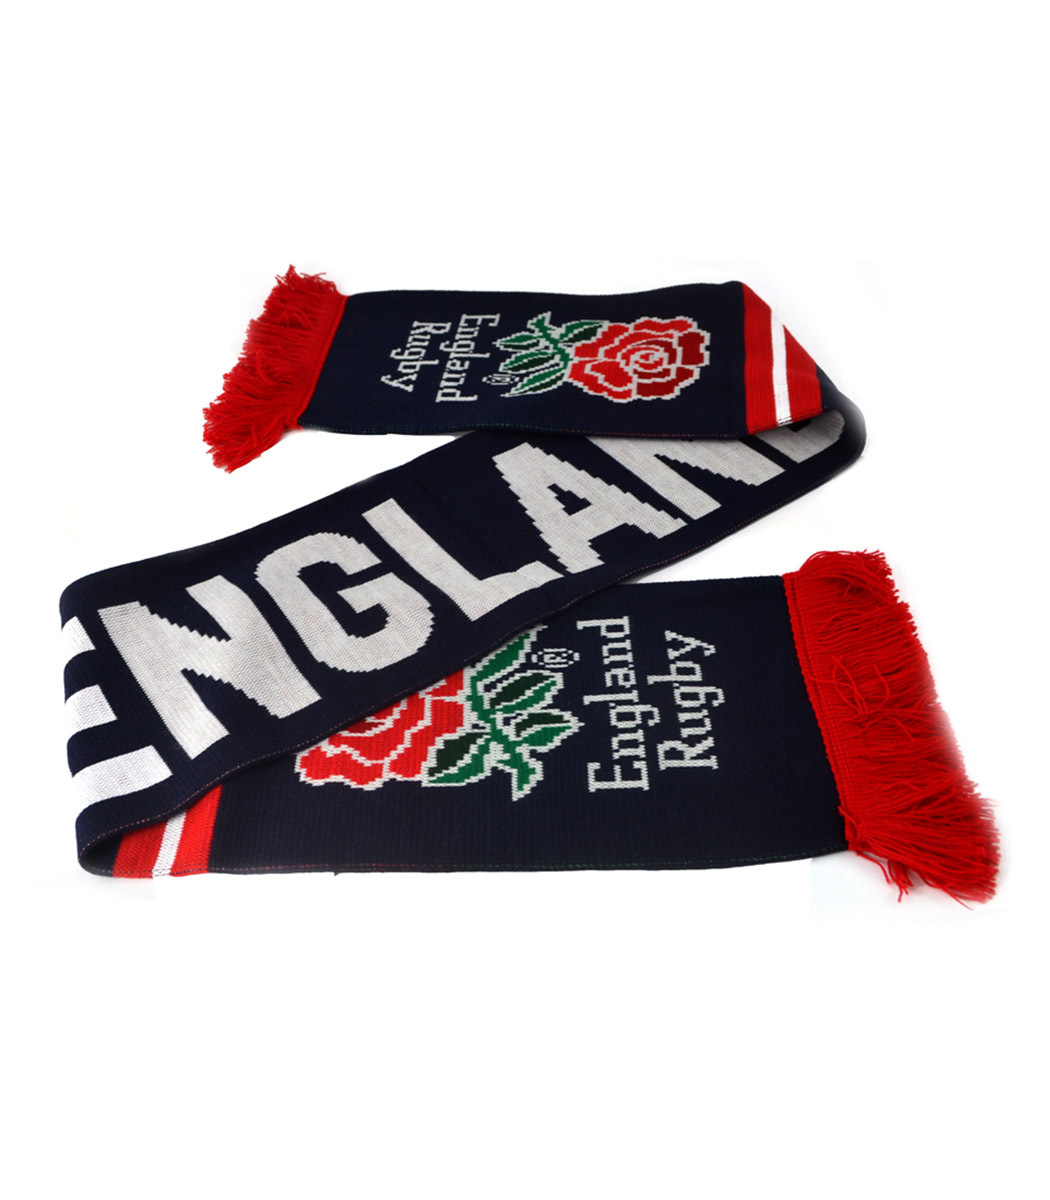 England Rugby Scarf 5551478975888